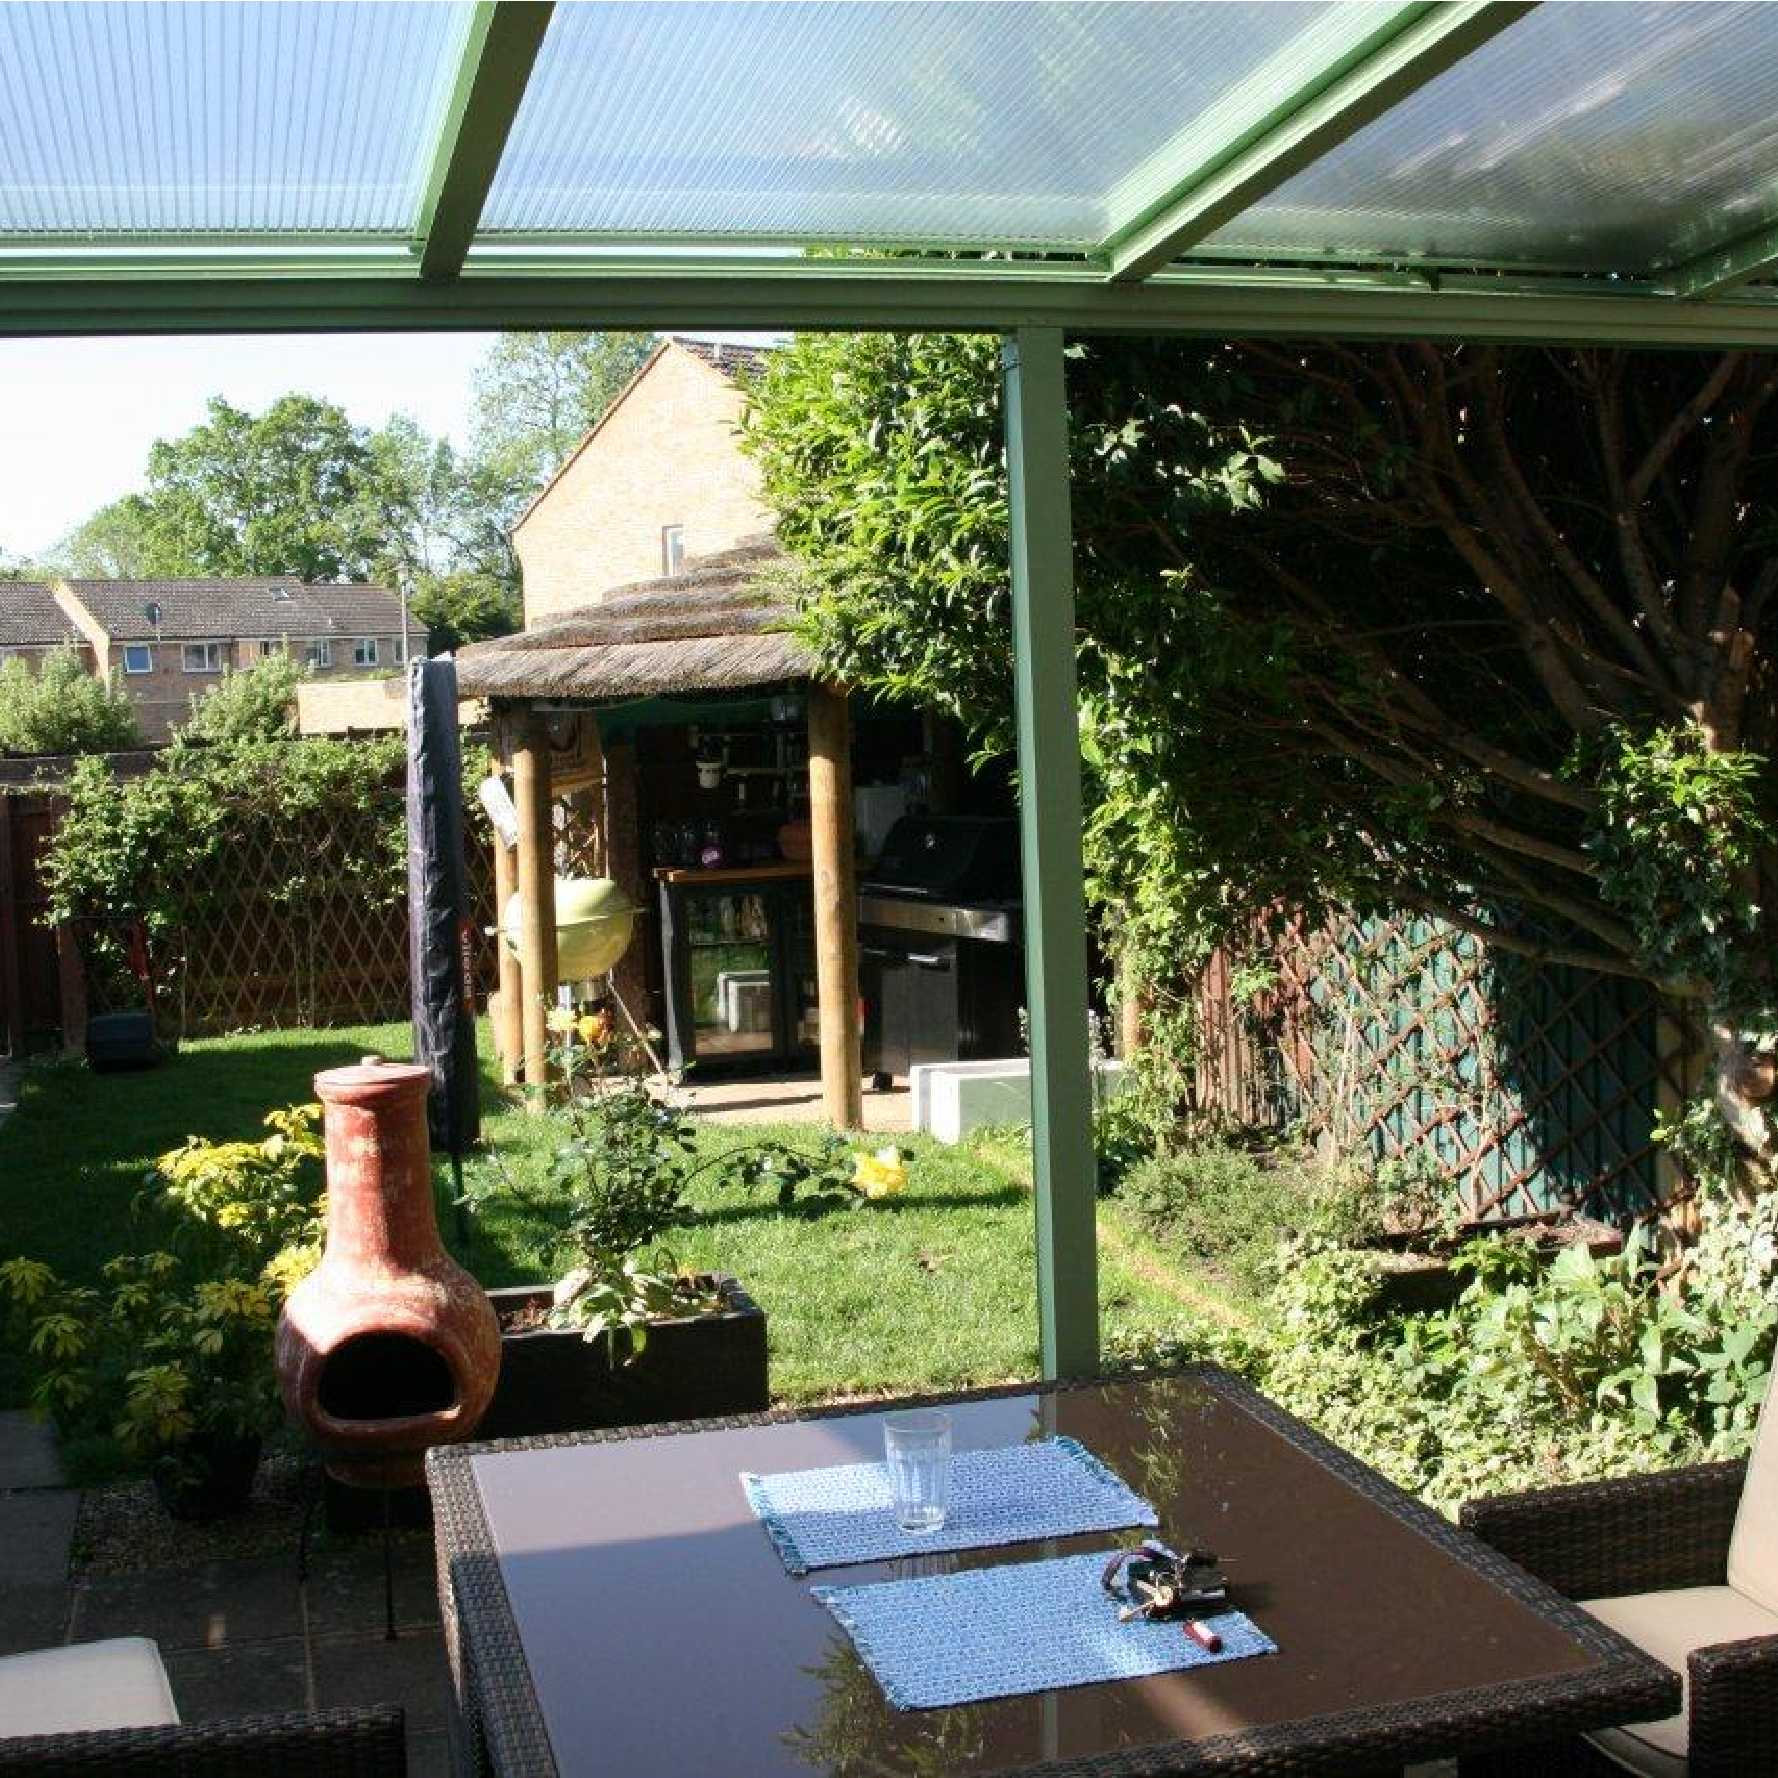 Affordable Omega Smart Lean-To Canopy with 16mm Polycarbonate Glazing - 12.0m (W) x 3.5m (P), (5) Supporting Posts